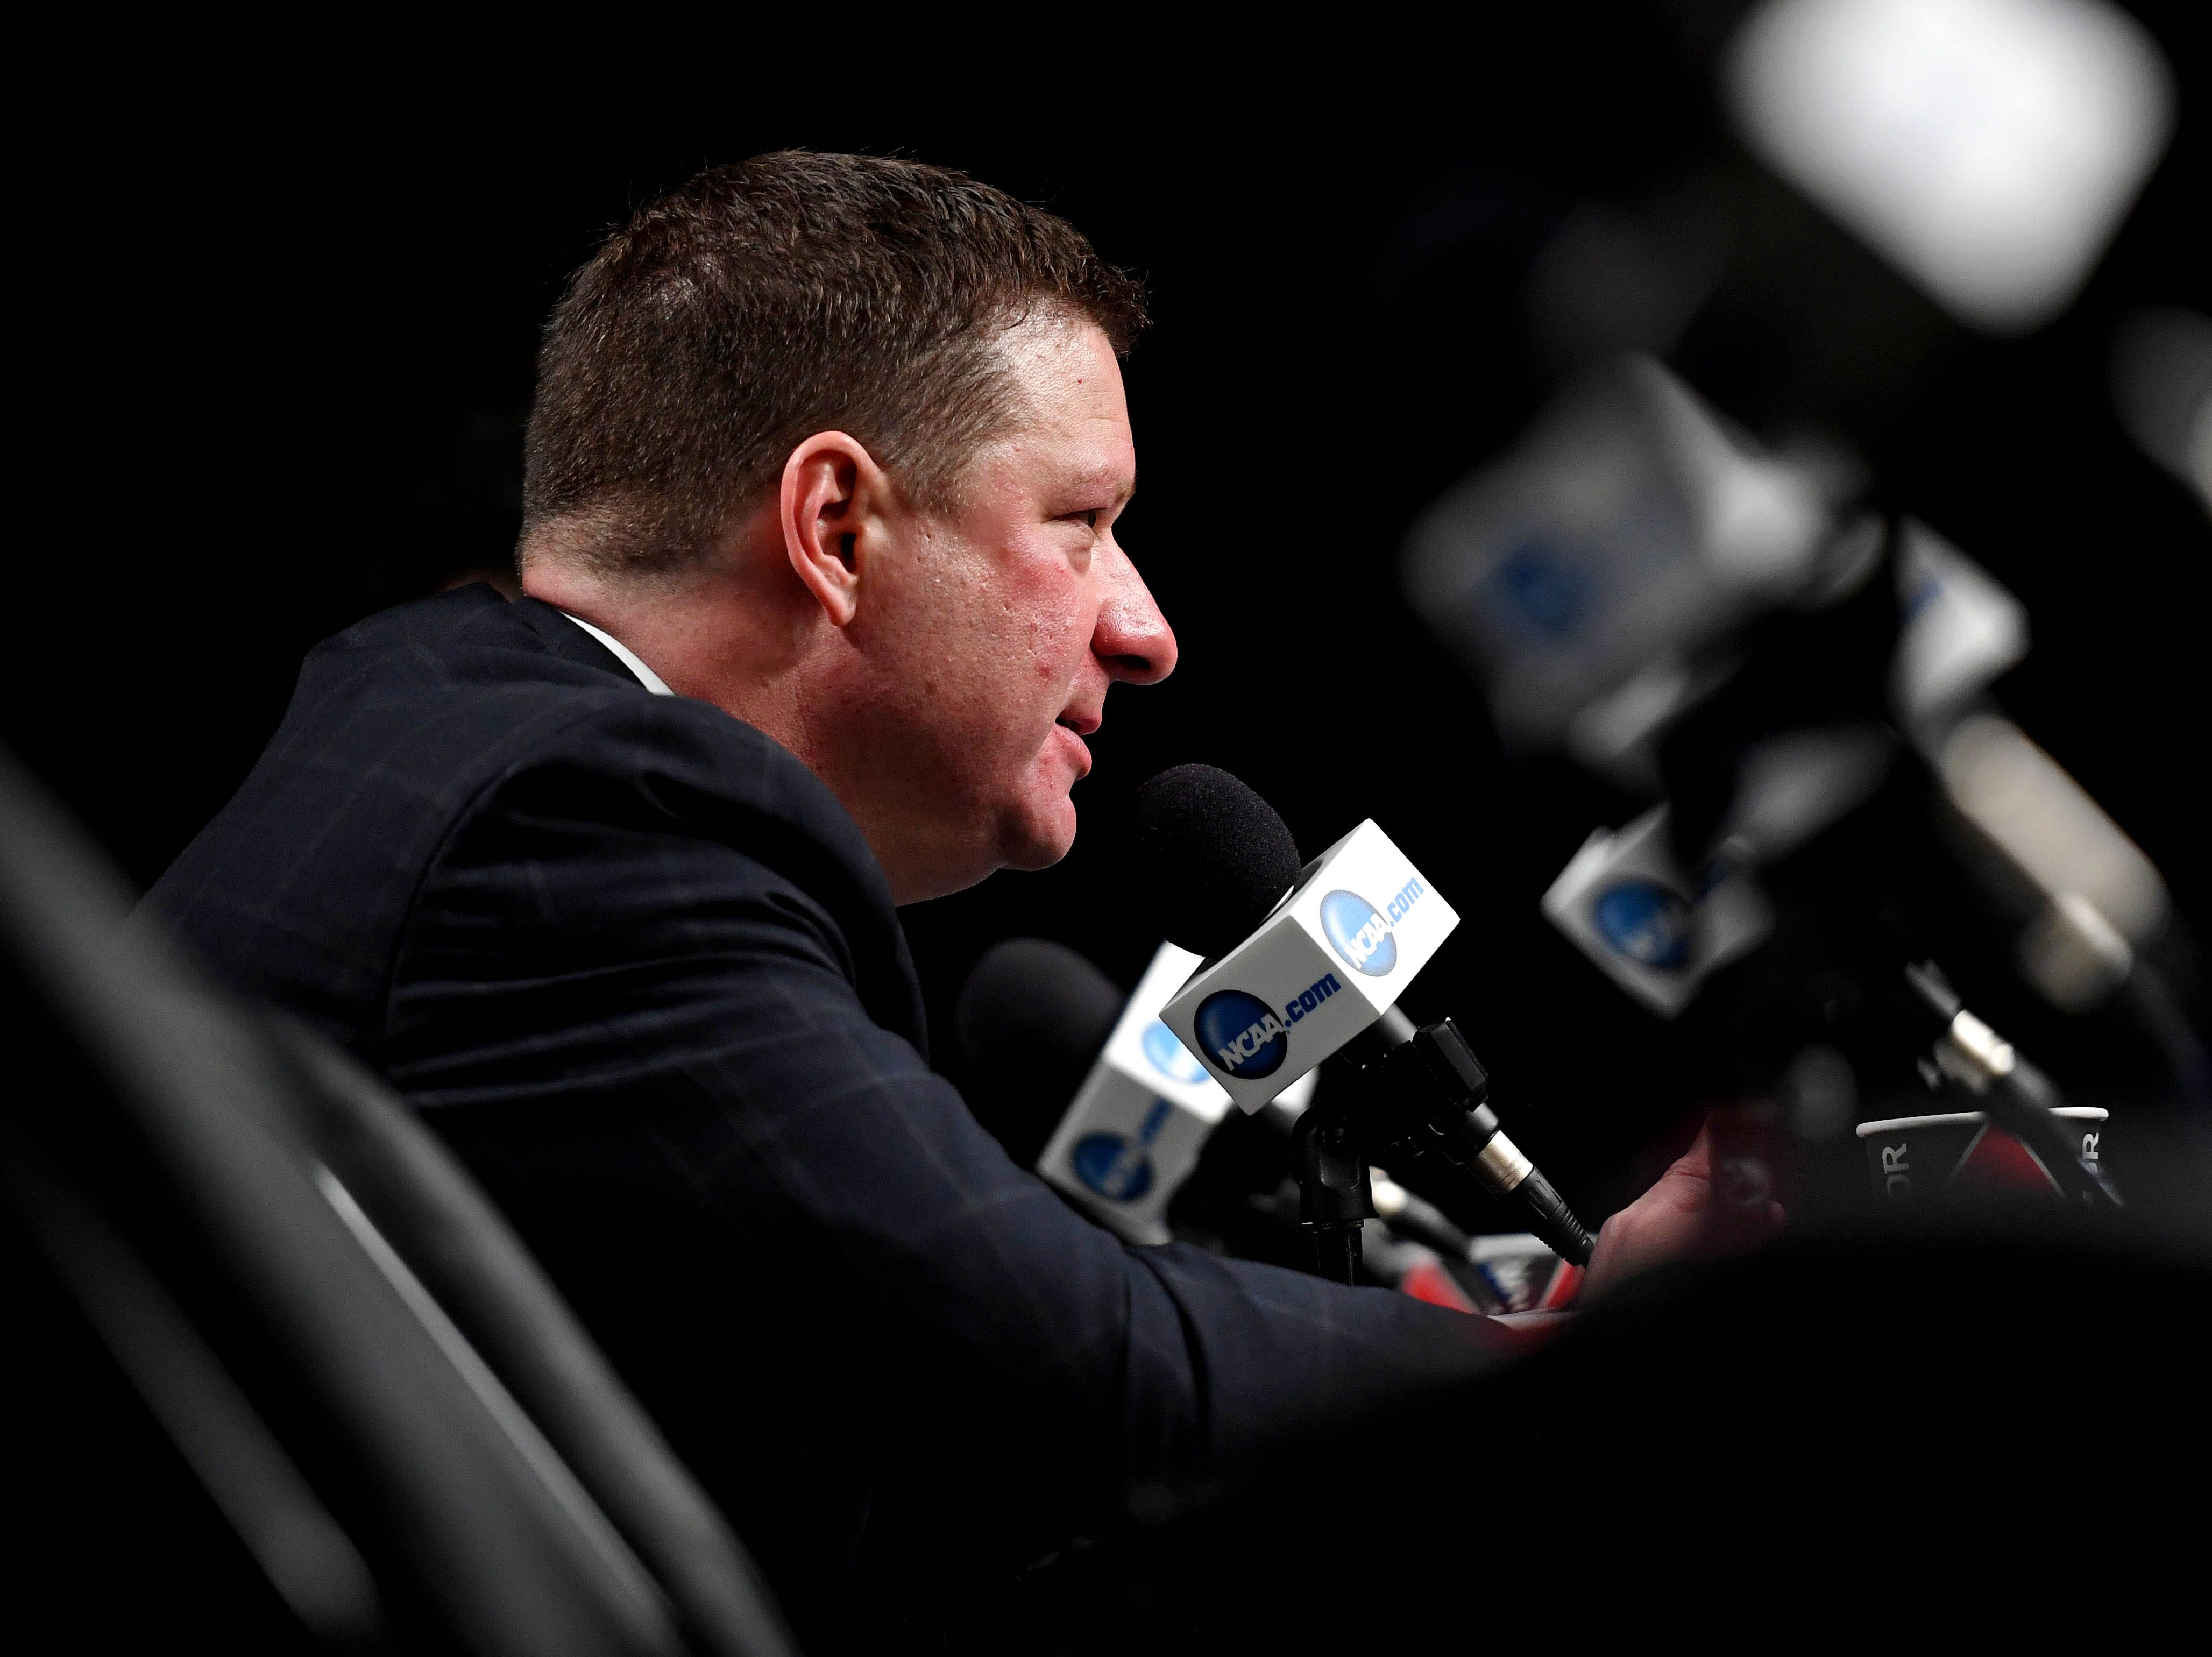 Apr 6, 2019; Minneapolis, MN, USA; Texas Tech Red Raiders head coach Chris Beard speaks during a press conference after the game against the Michigan State Spartans in the semifinals of the 2019 men's Final Four at US Bank Stadium. Mandatory Credit: Shanna Lockwood-USA TODAY Sports